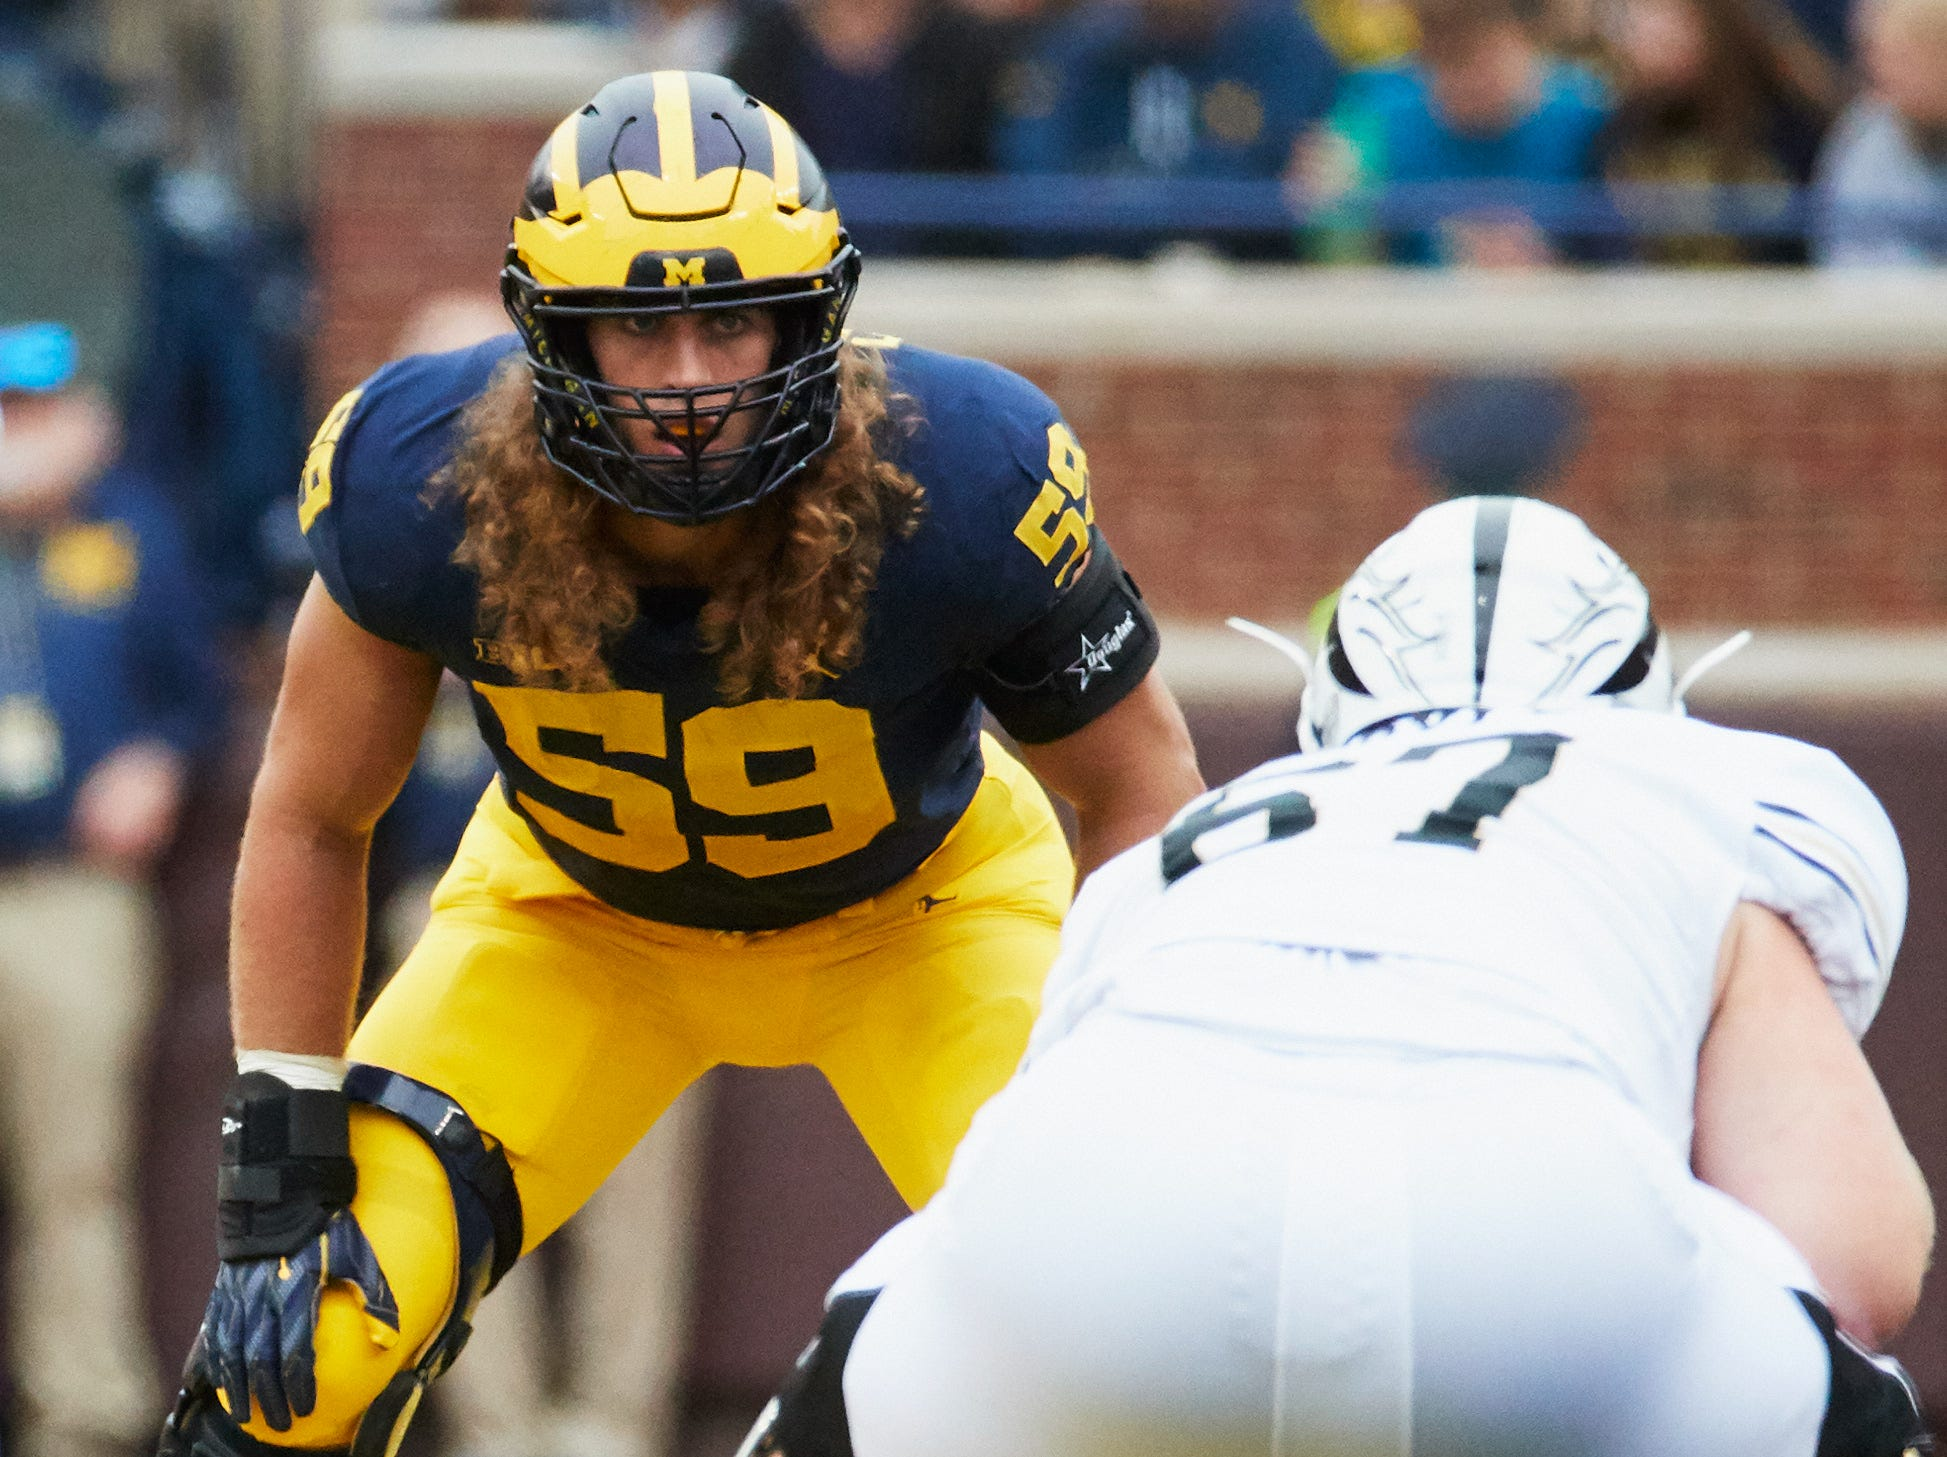 Sep 8, 2018; Ann Arbor, MI, USA; Michigan Wolverines linebacker Noah Furbush (59) gets set against the Western Michigan Broncos at Michigan Stadium. Mandatory Credit: Rick Osentoski-USA TODAY Sports